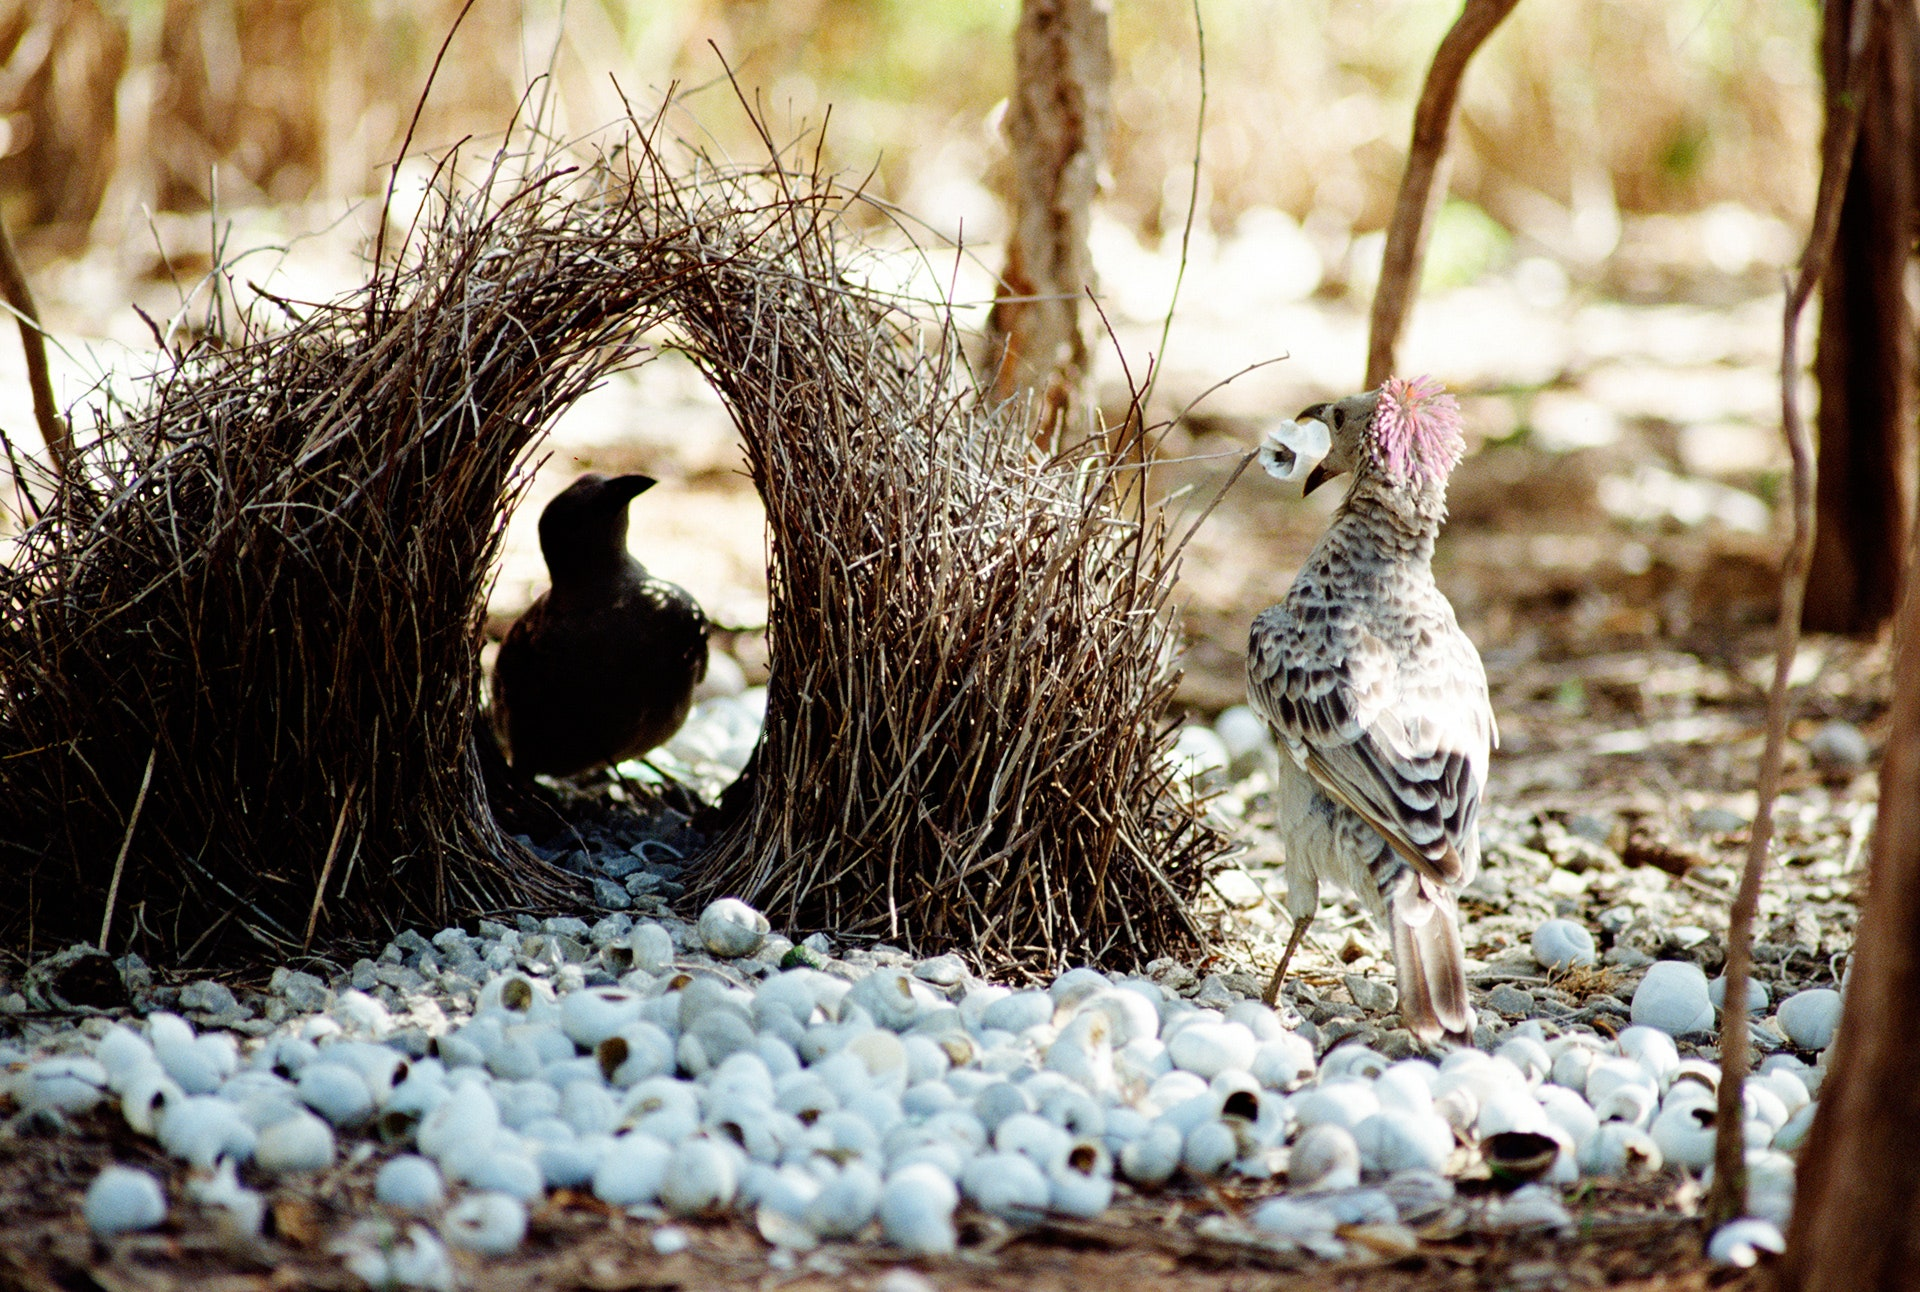 Perspective Masters: The Bowerbird